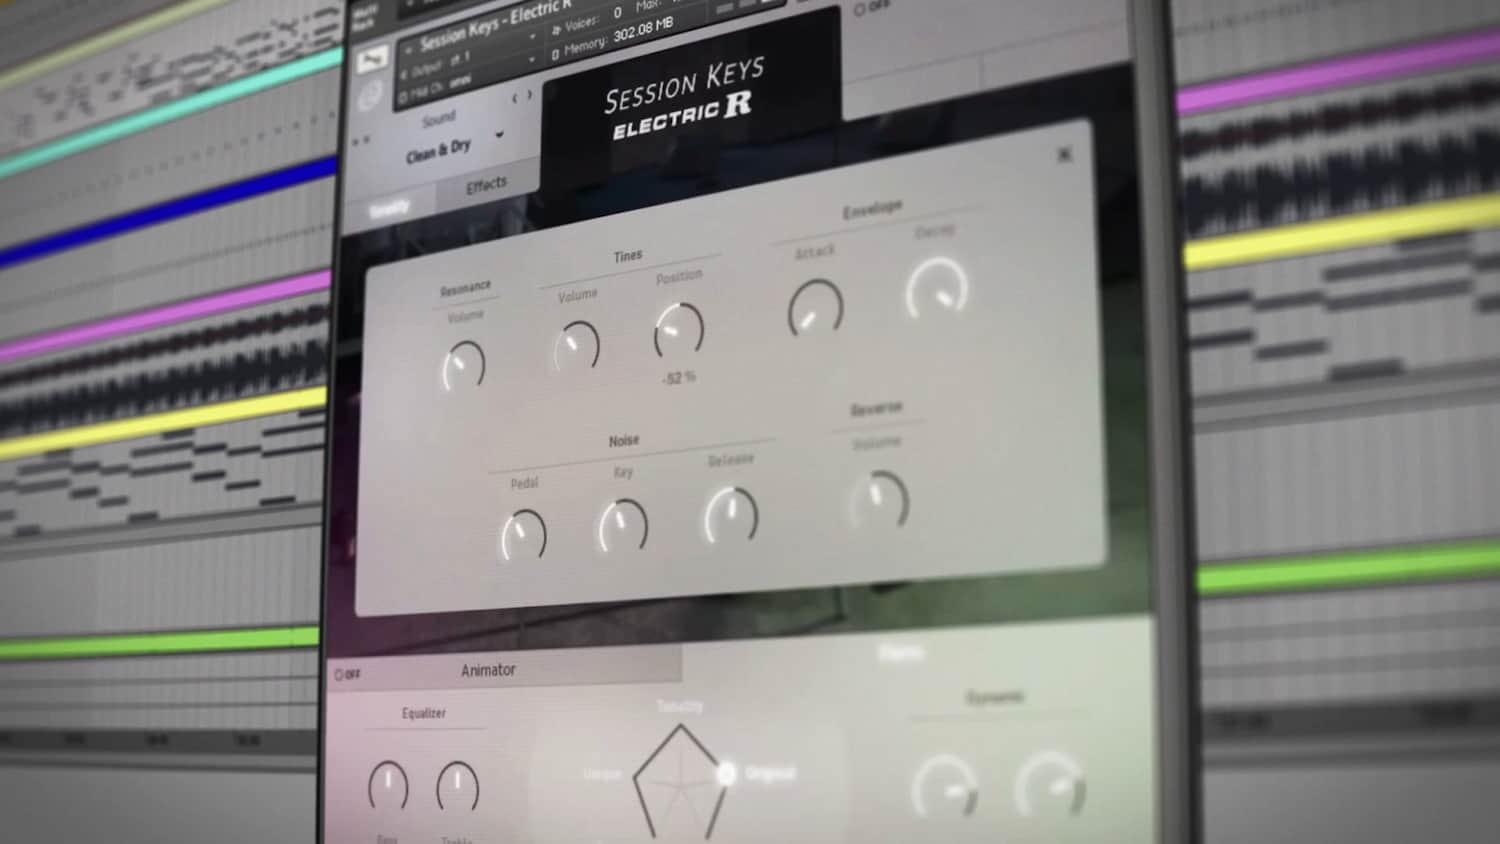 Session Keys Electric R - Kontakt based Mark I electric piano